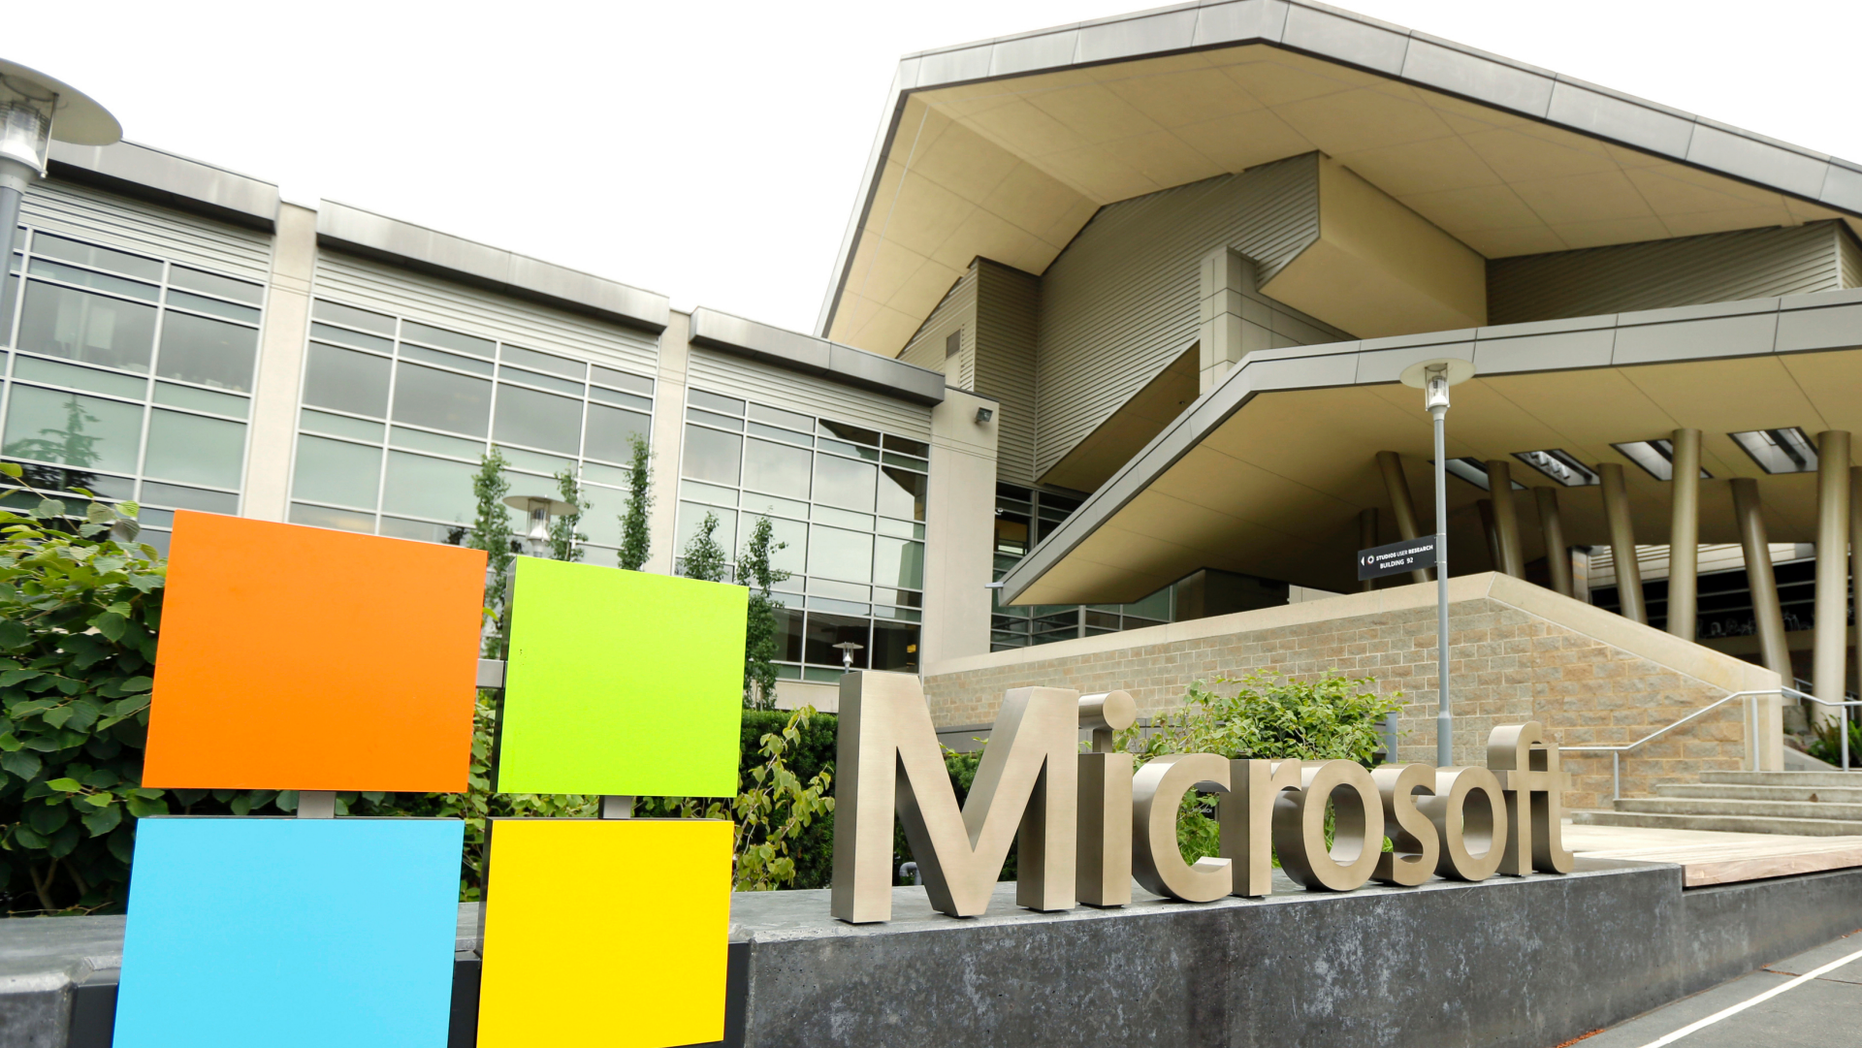 FILE - This July 3, 2014 file photo shows Microsoft Corp. signage outside the Microsoft Visitor Center in Redmond, Wash. (AP Photo Ted S. Warren, File)